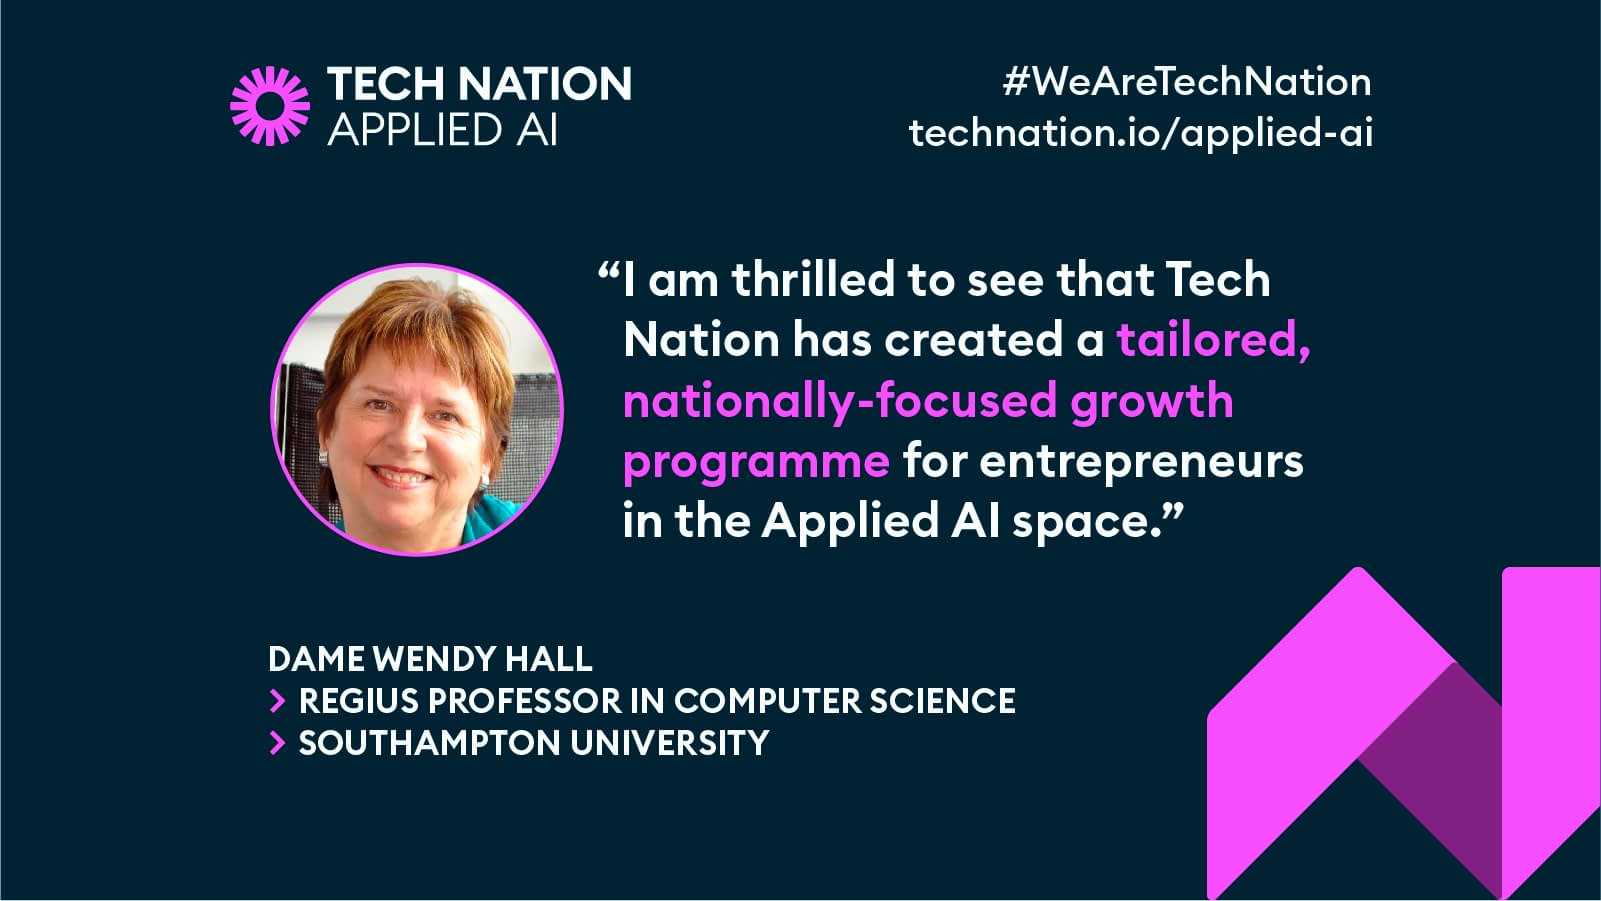 Dame Wendy Hall on Tech Nation's AI growth prgramme